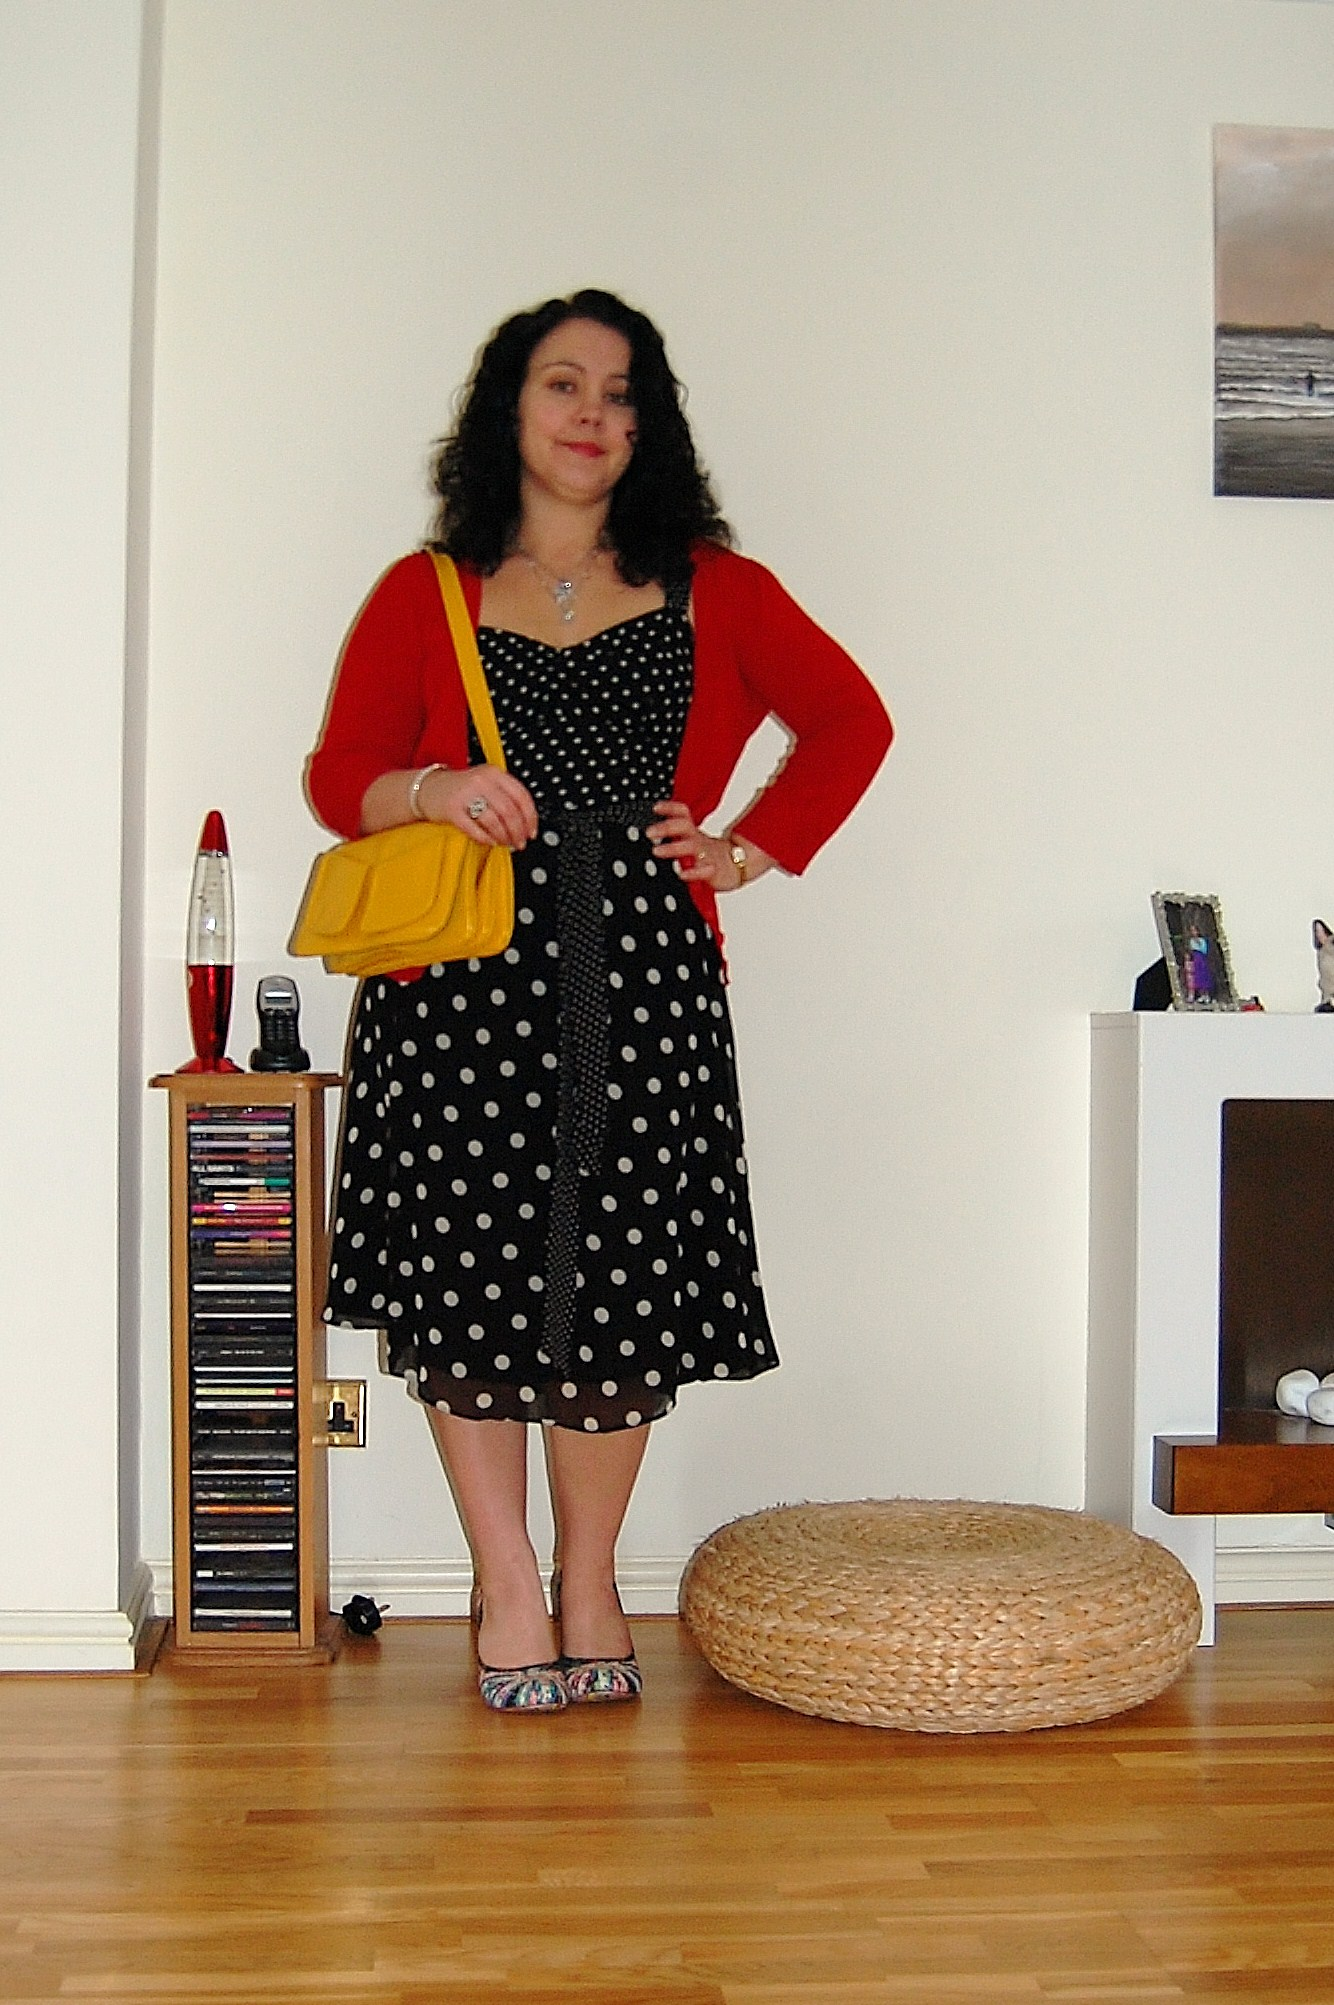 010 2 Polka Dots and My Favourite Ethical Fashion Blogs